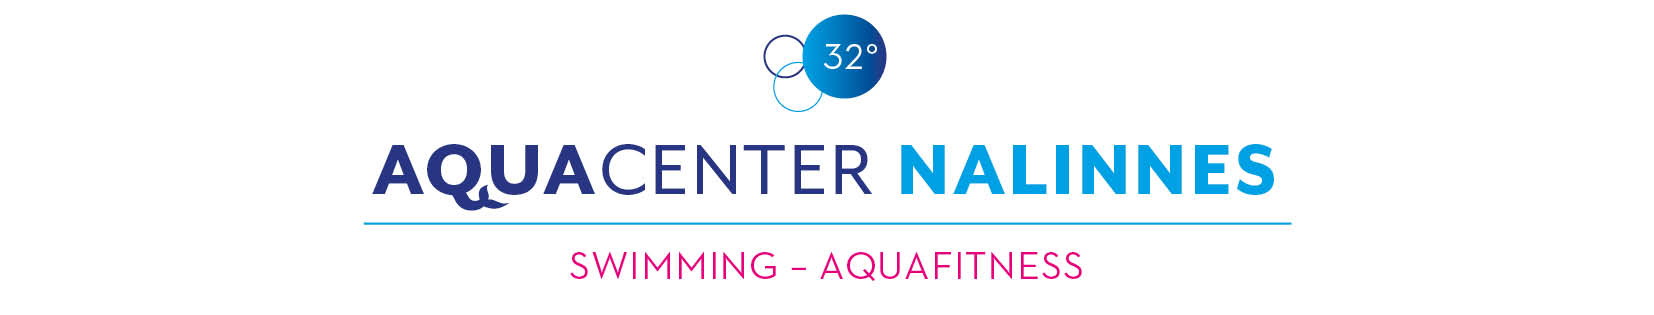 Aqua Center Nalinnes ( Swimming - Aquafitness)